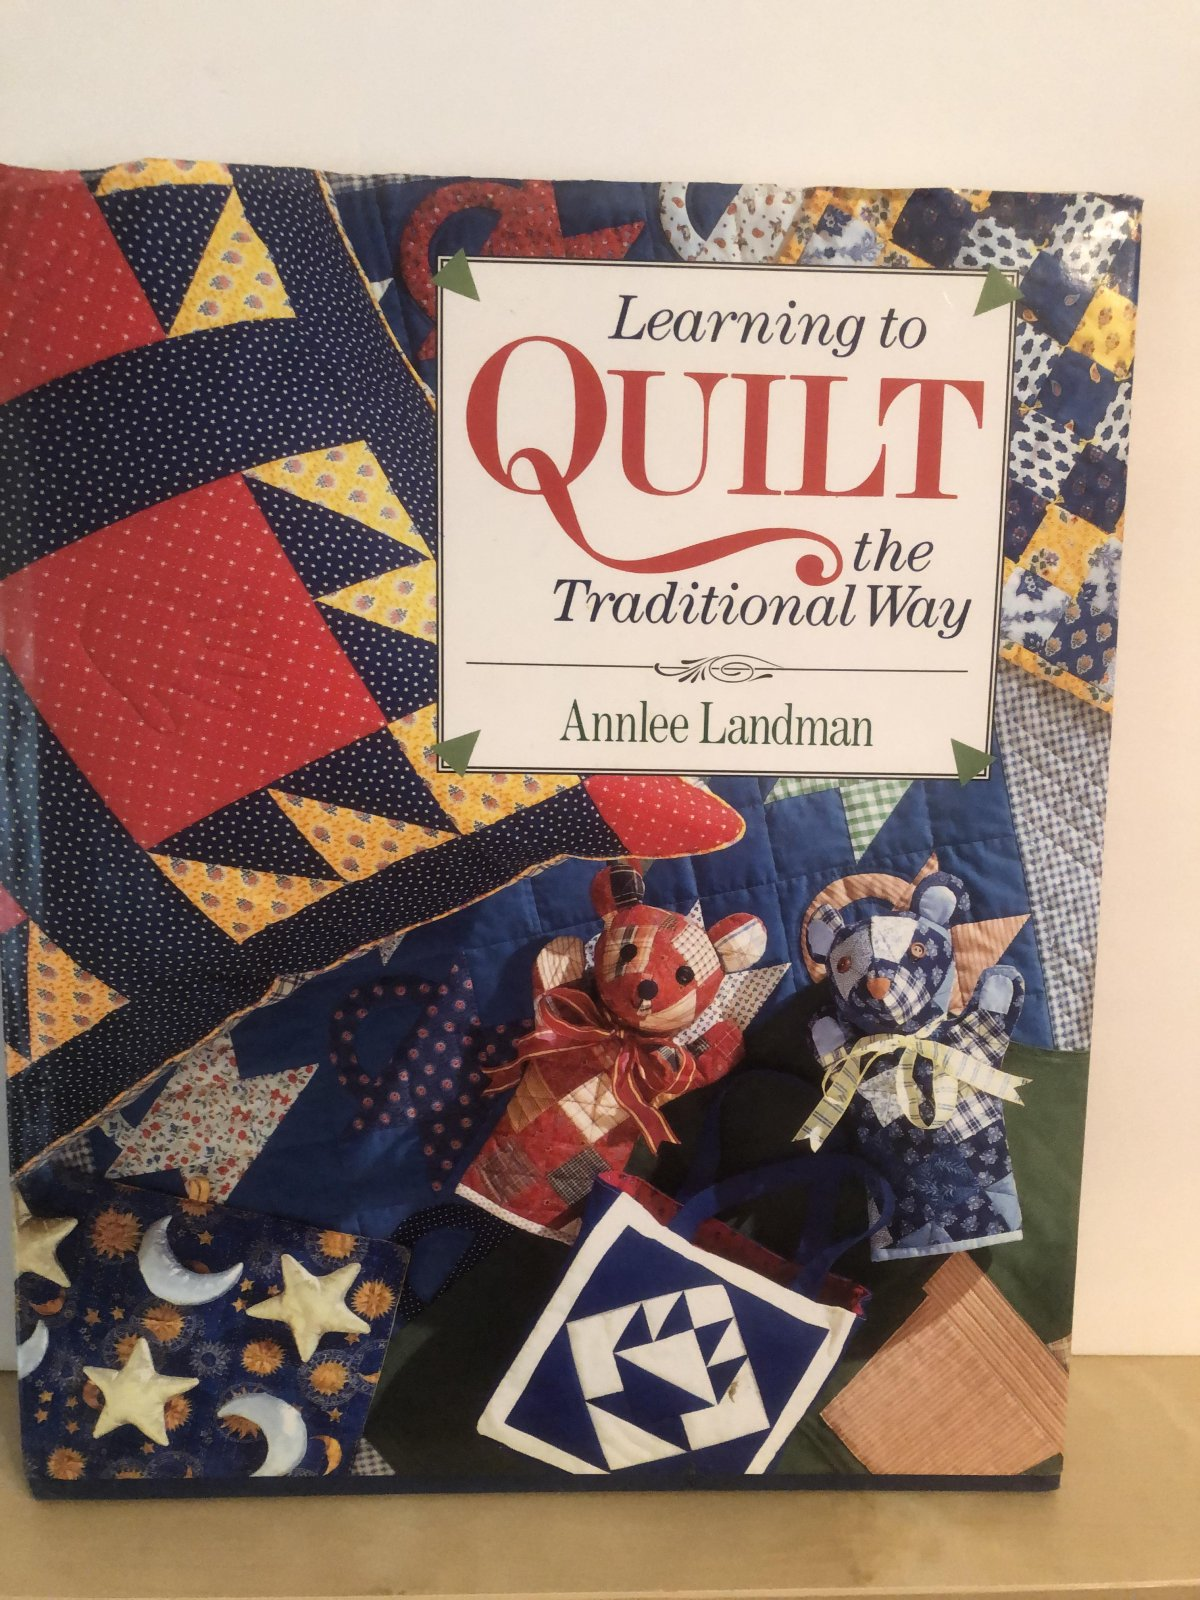 Learning to Quilt the Traditional Way by Annlee Landman